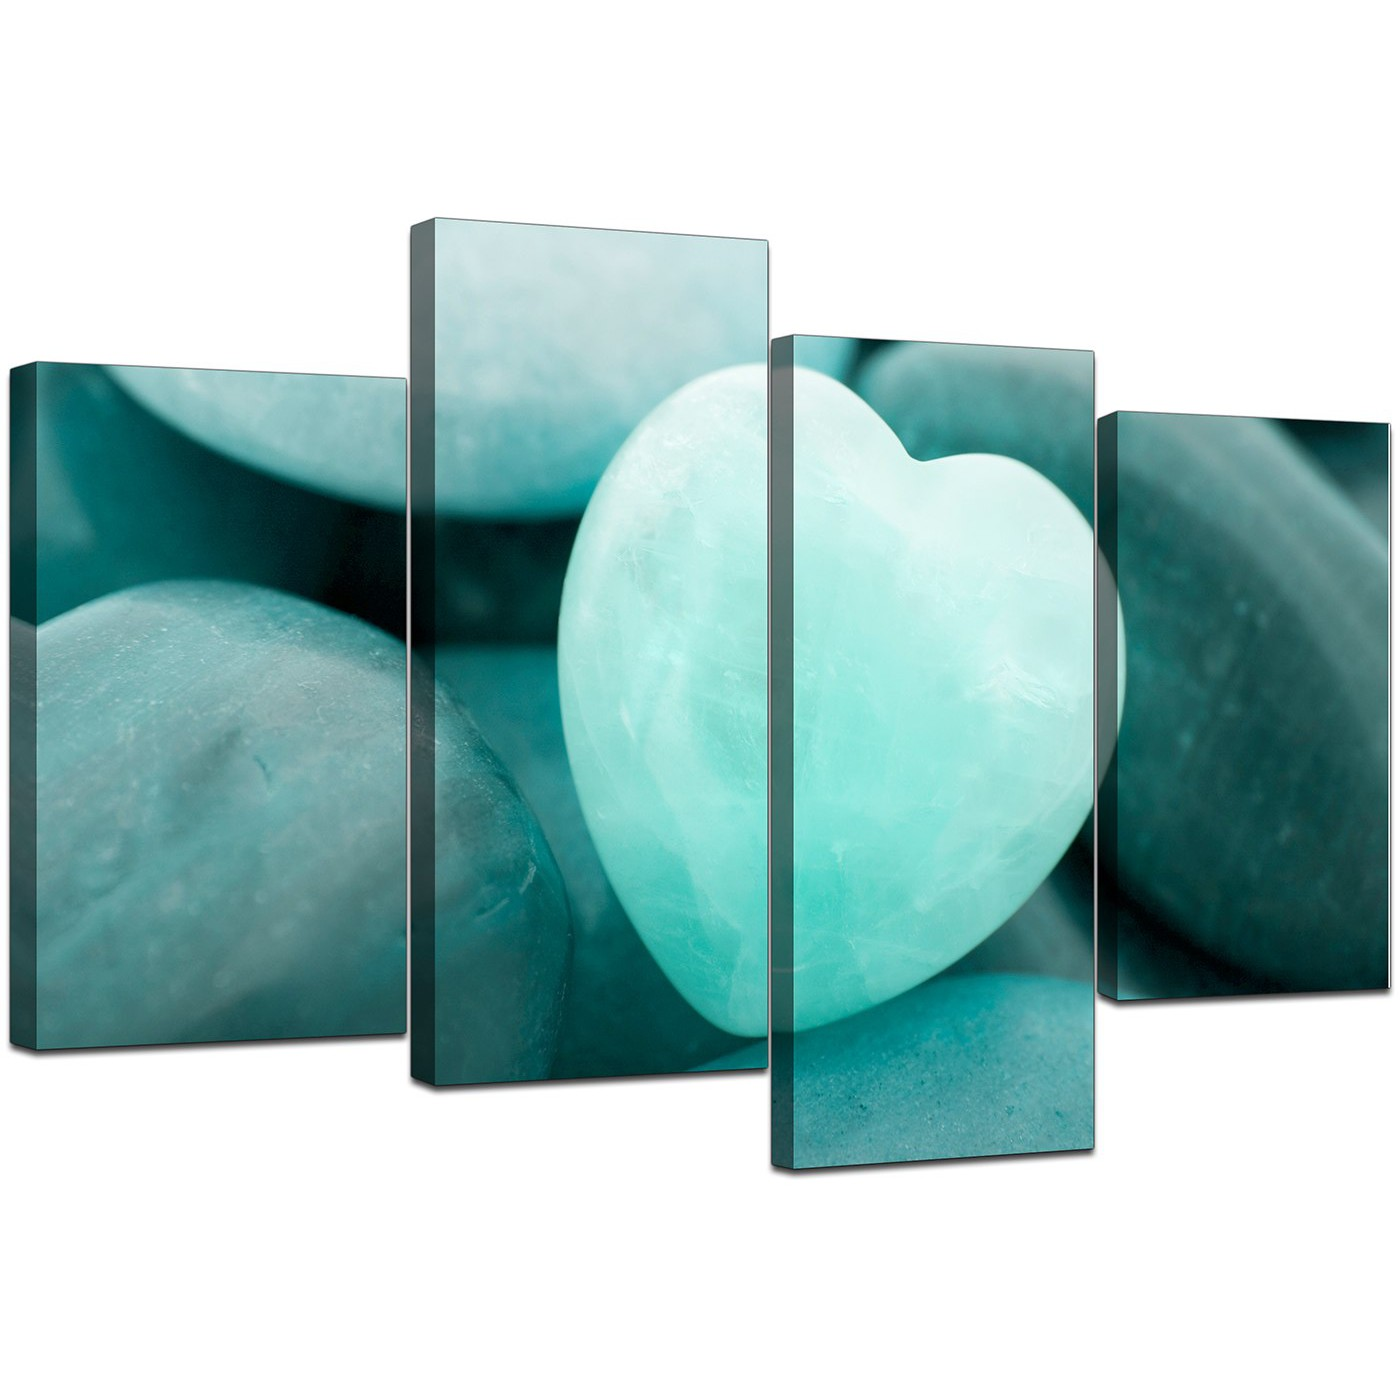 Display Gallery Item 5; Four Panel Set Of Living Room Teal Canvas Pictures  Display Gallery Item 6